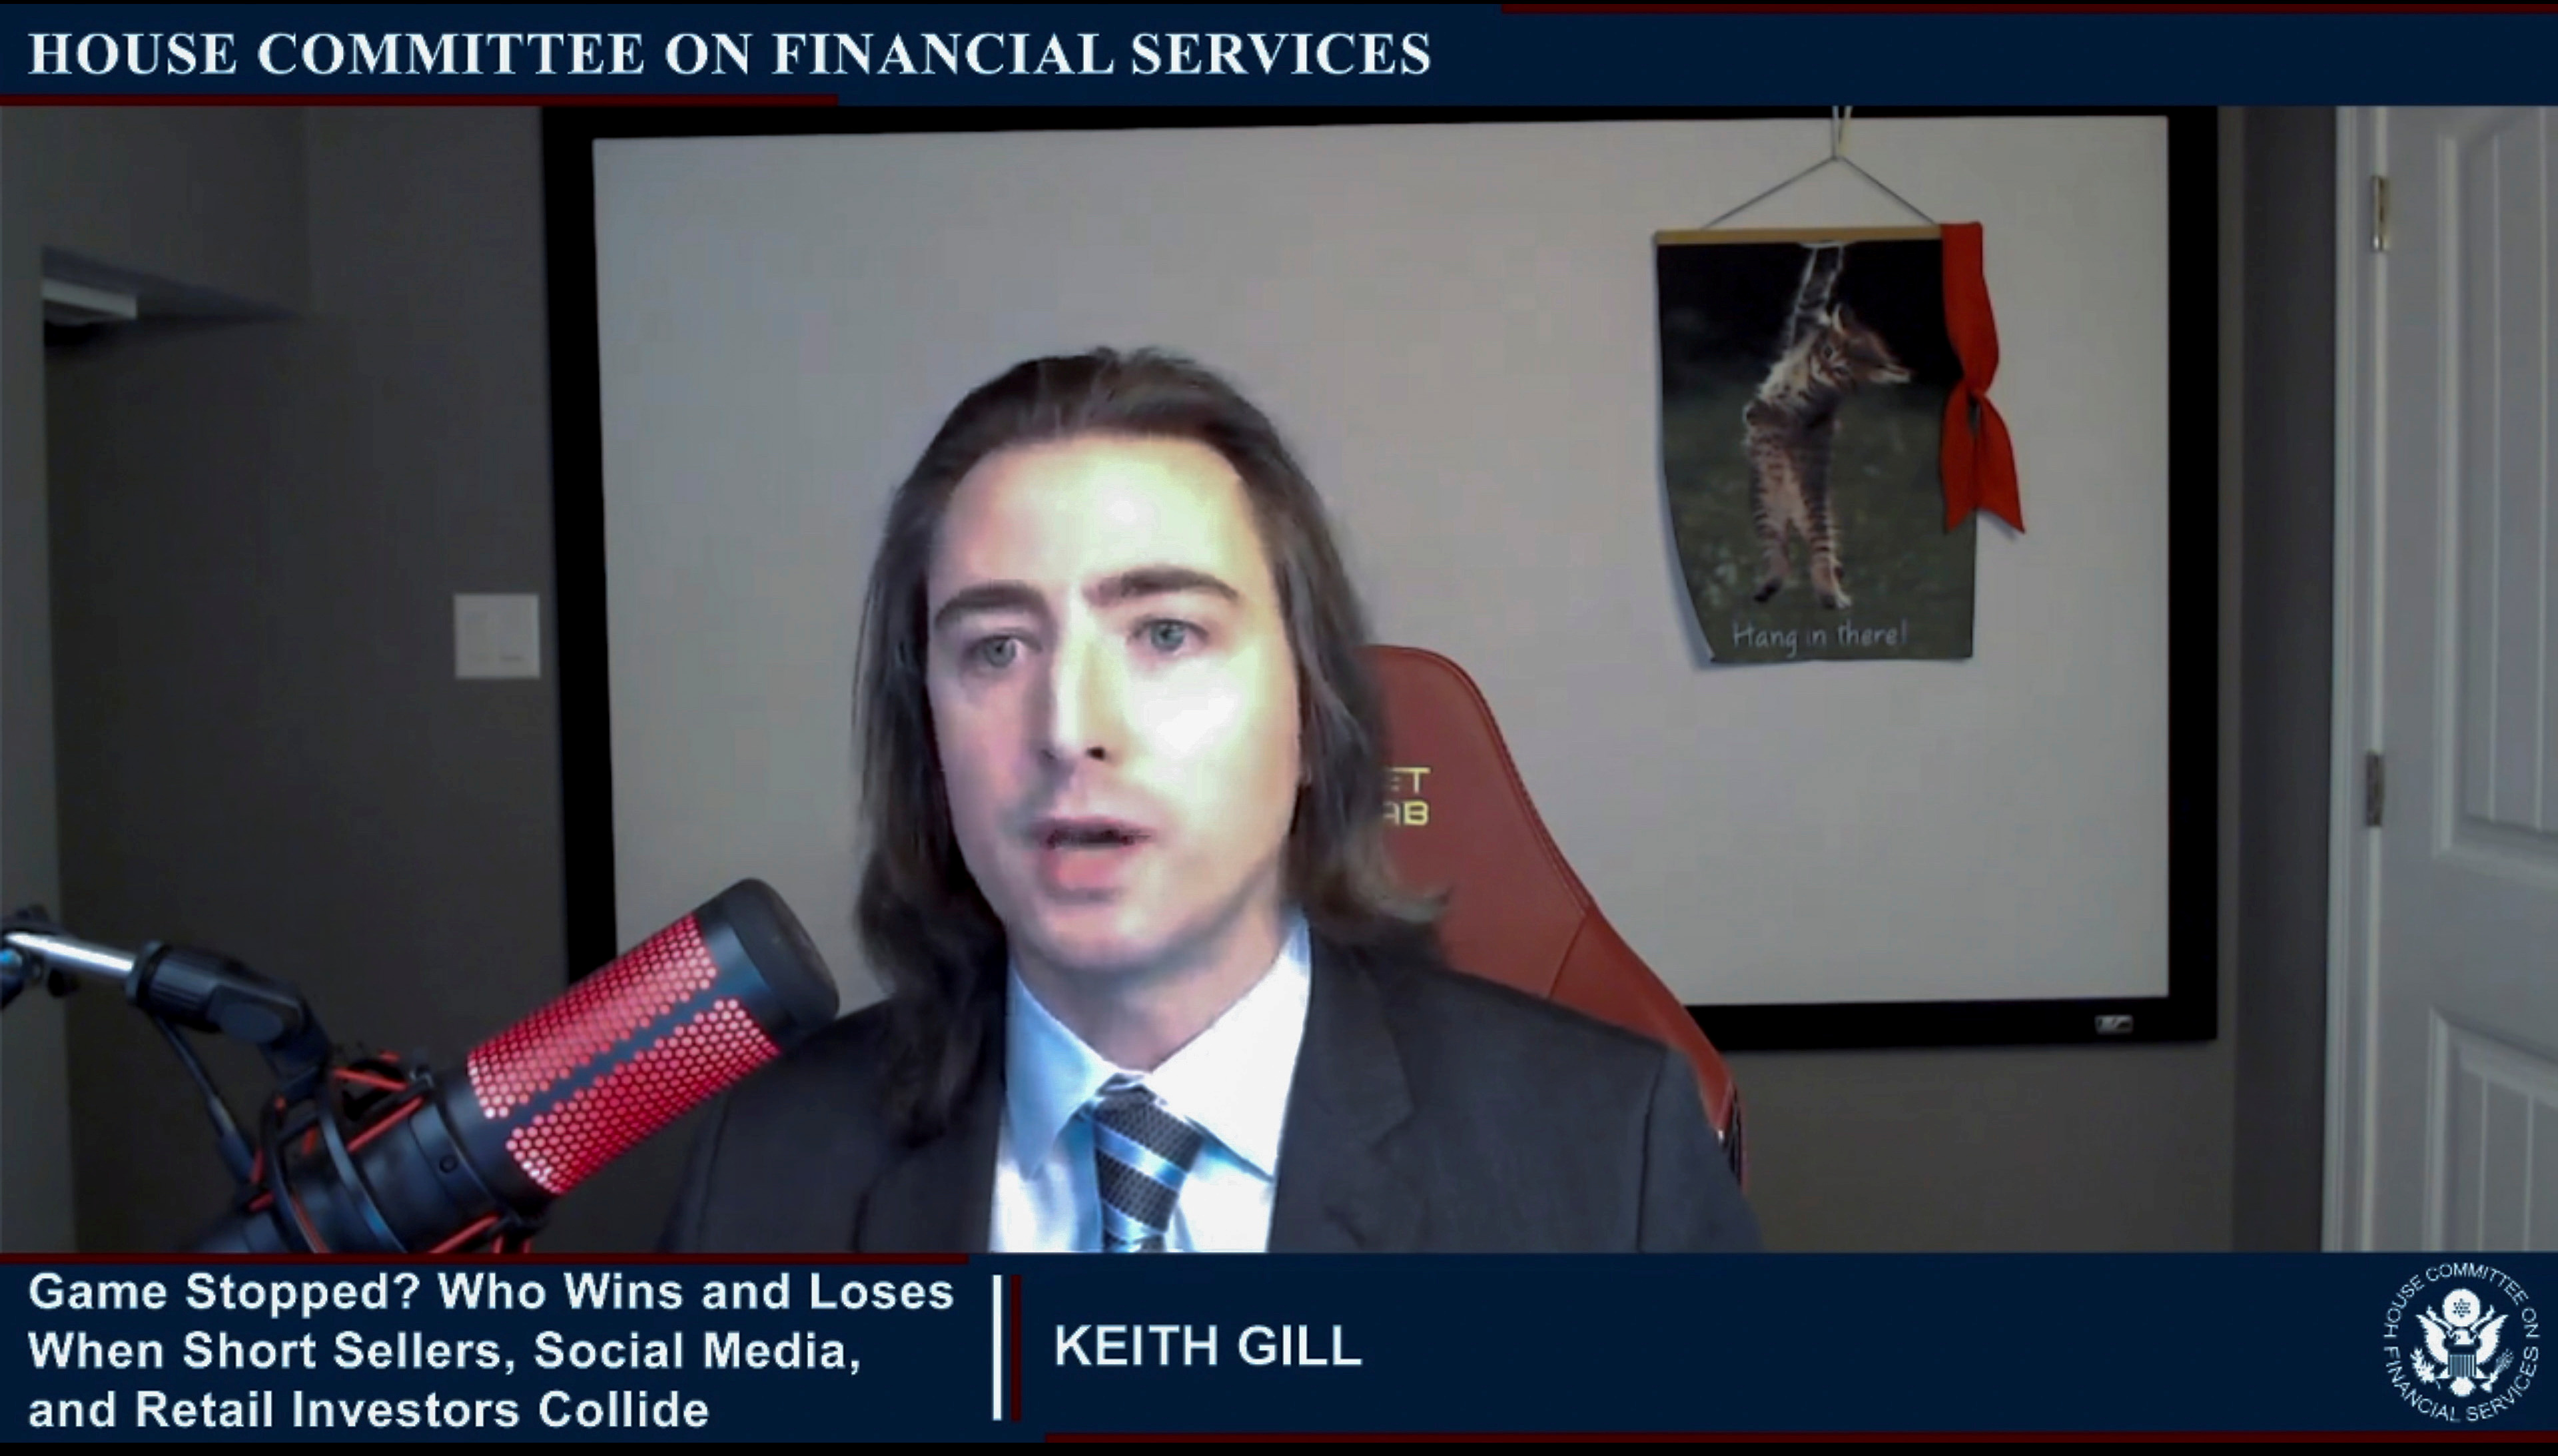 """Keith Gill, an individual online investor in GameStop, testifies during an entirely virtual hearing of the U.S. House of Representatives Committee on Financial Services entitled """"Game Stopped? Who Wins and Loses When Short Sellers, Social Media, and Retail Investors Collide?"""", in Washington, February 18, 2021.   House Committee on Financial Services/Handout via Reuters"""